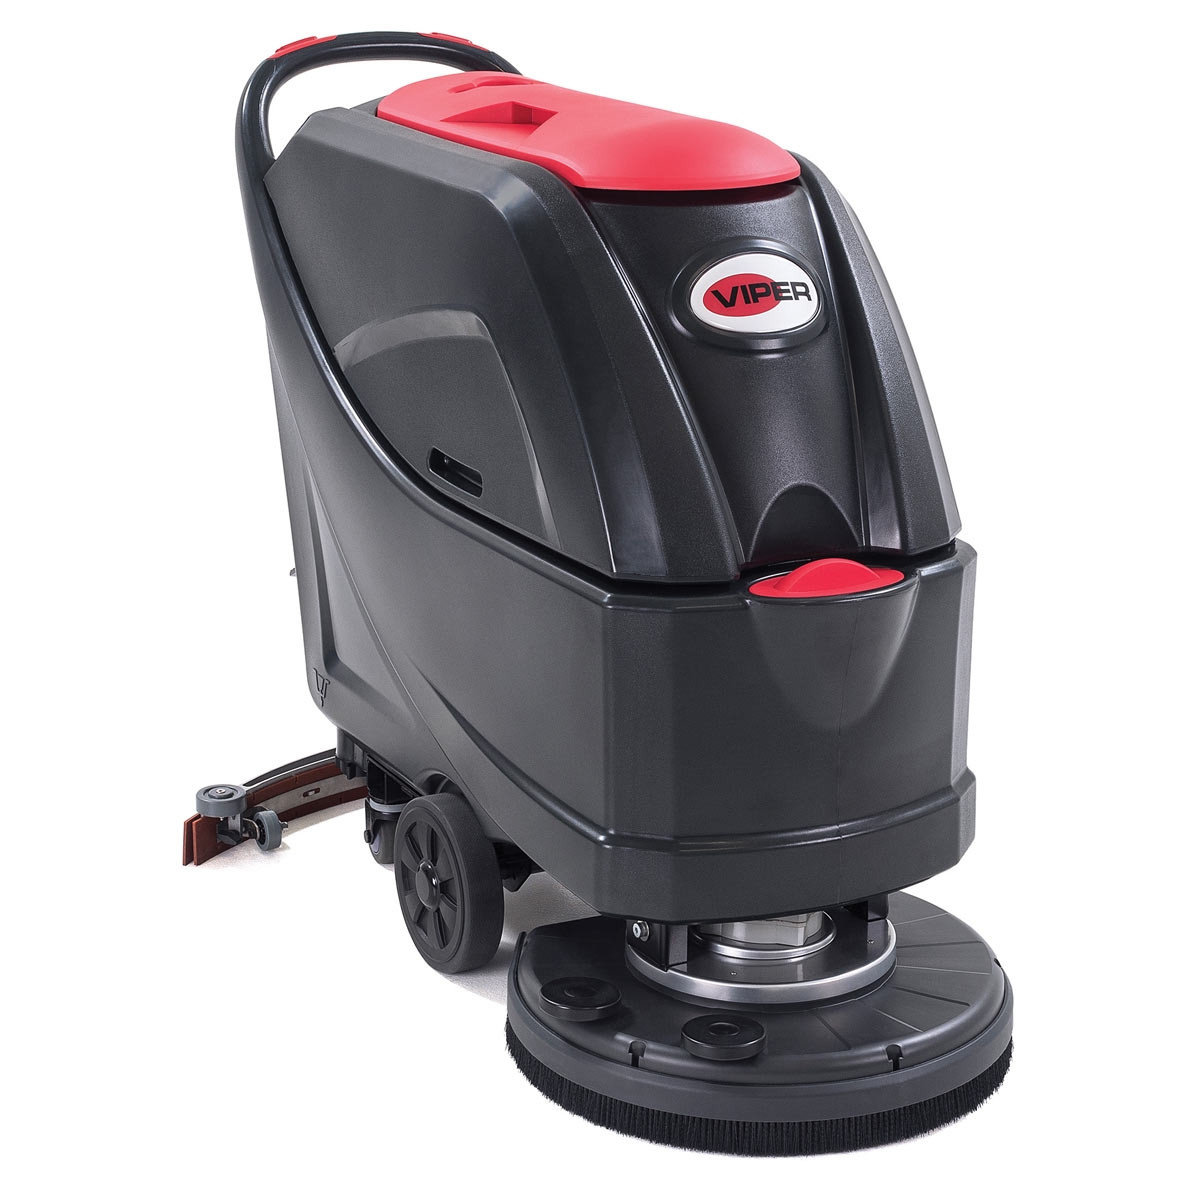 Viper 20 Quot Industrial Automatic Floor Scrubber Battery